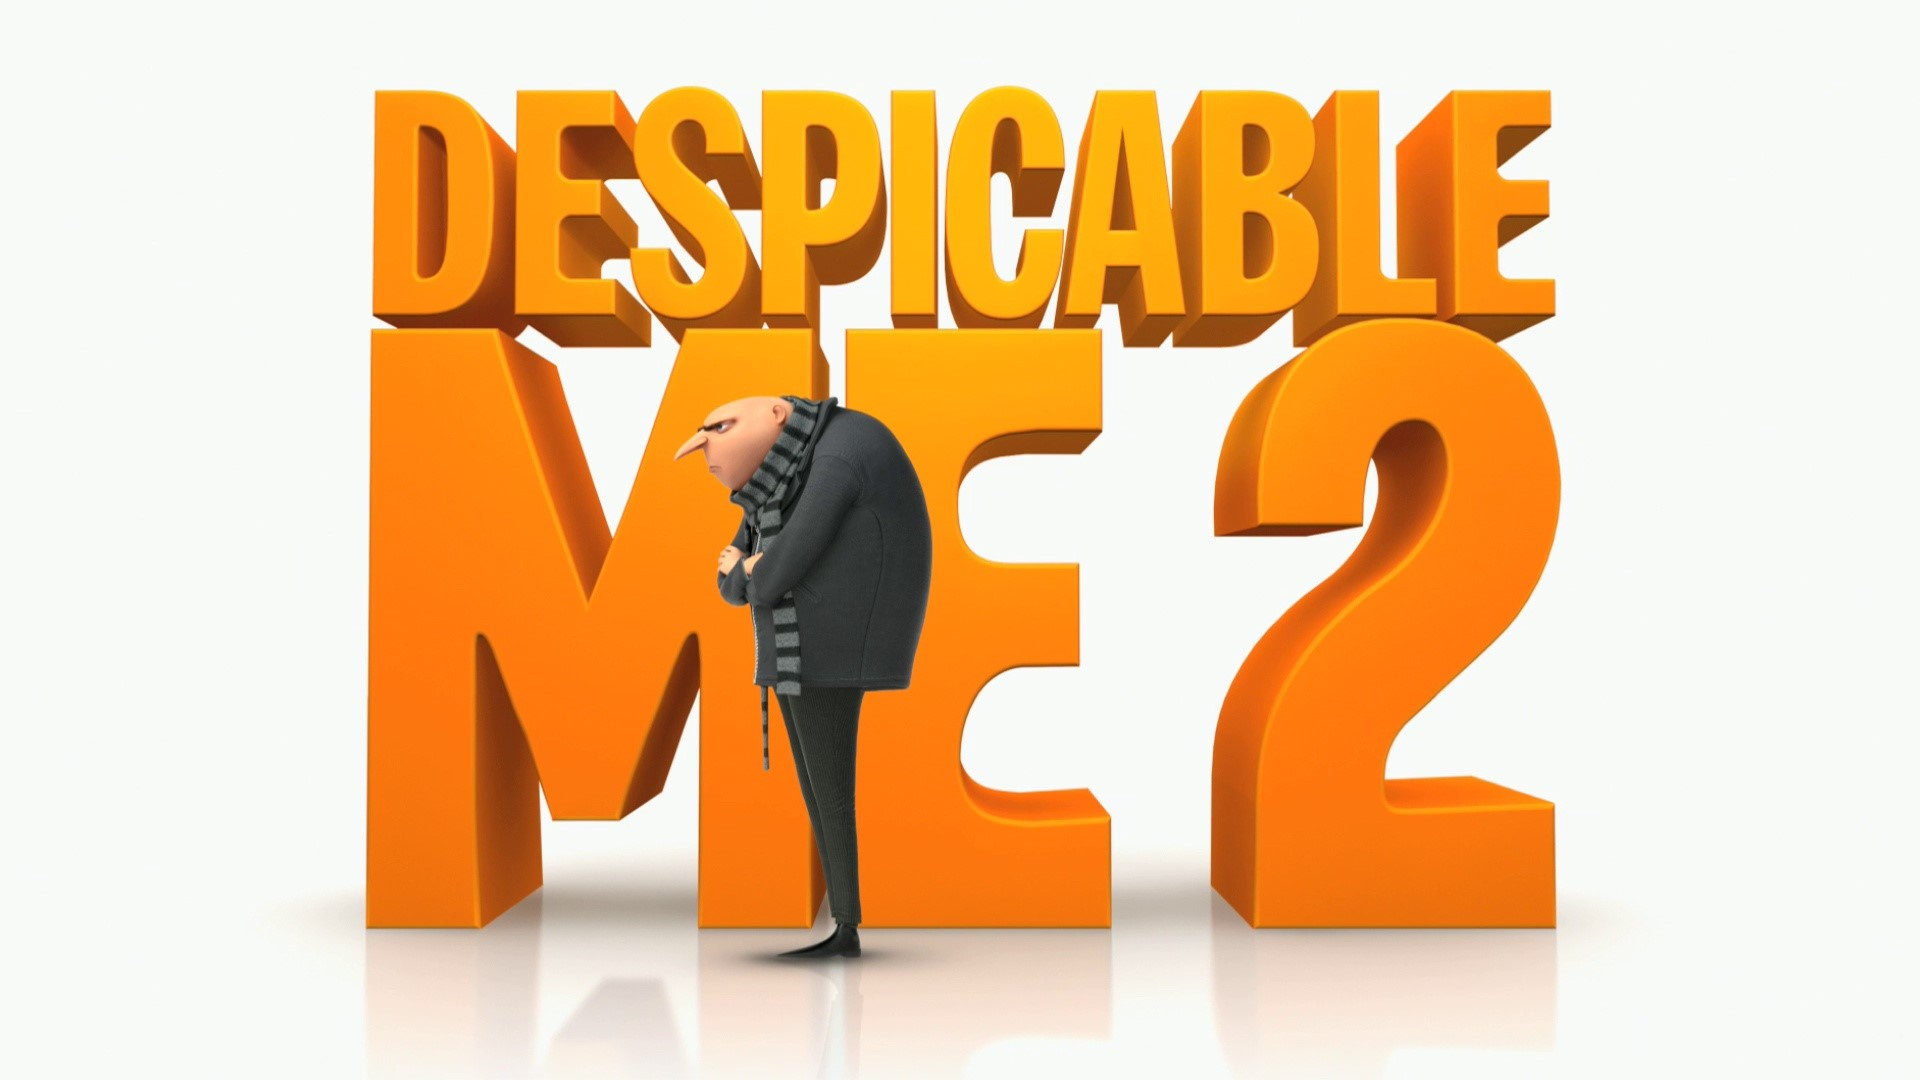 Wallpaper Despicable me 2